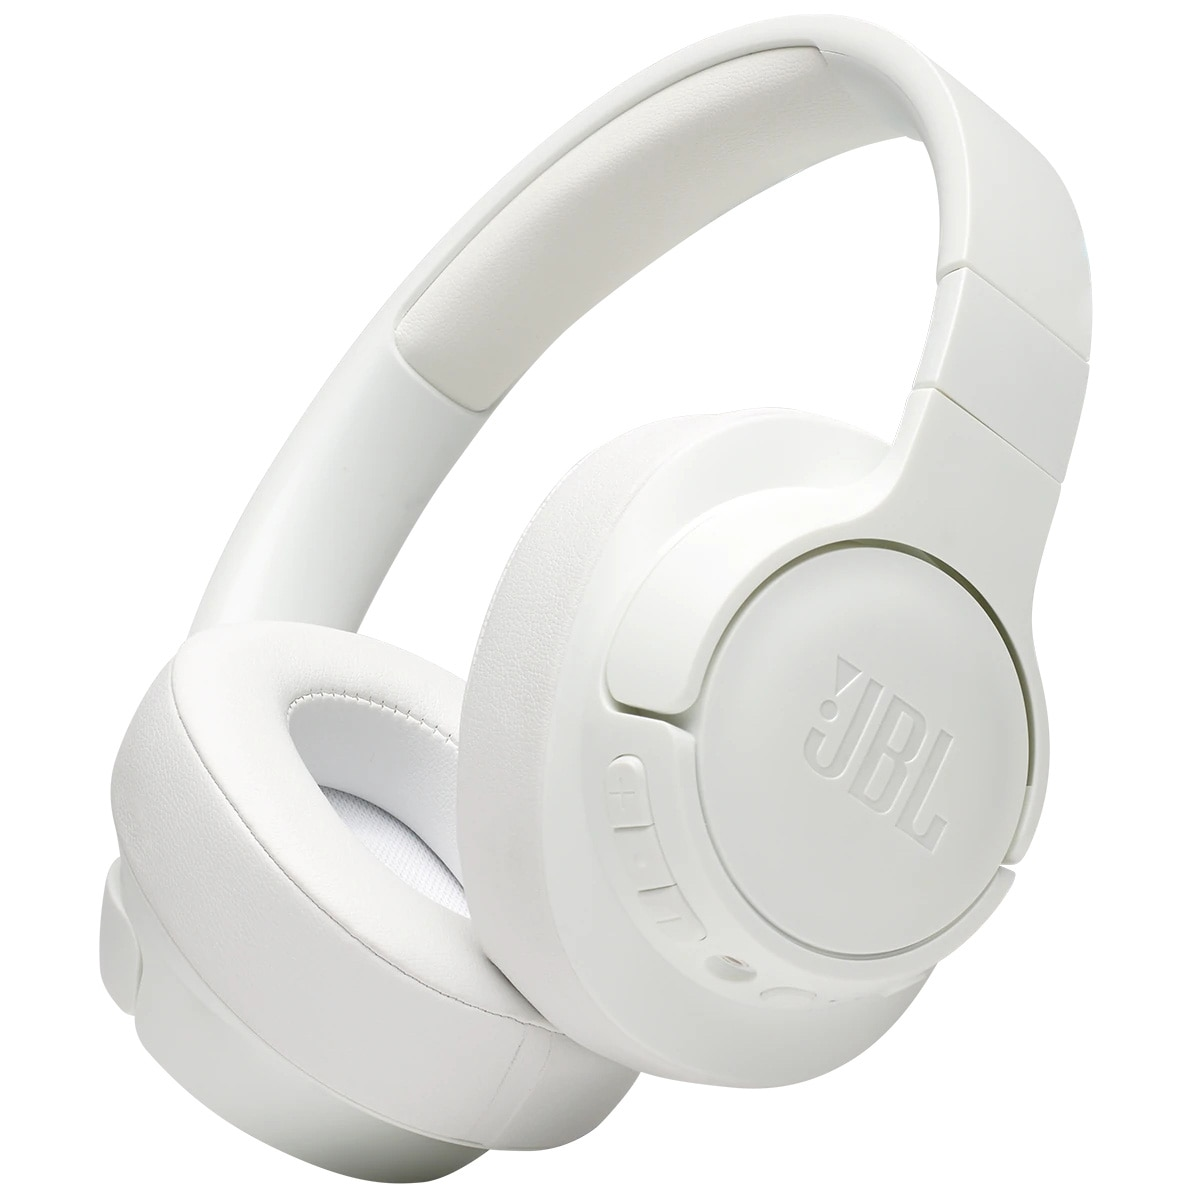 Fotografie Casti JBL TUNE 750, Active Noise Cancelling, Pure Bass, Hands-Free & Voice Control, Multi-Point Connection, Bluetooth Streaming, 15H Playback, Alb